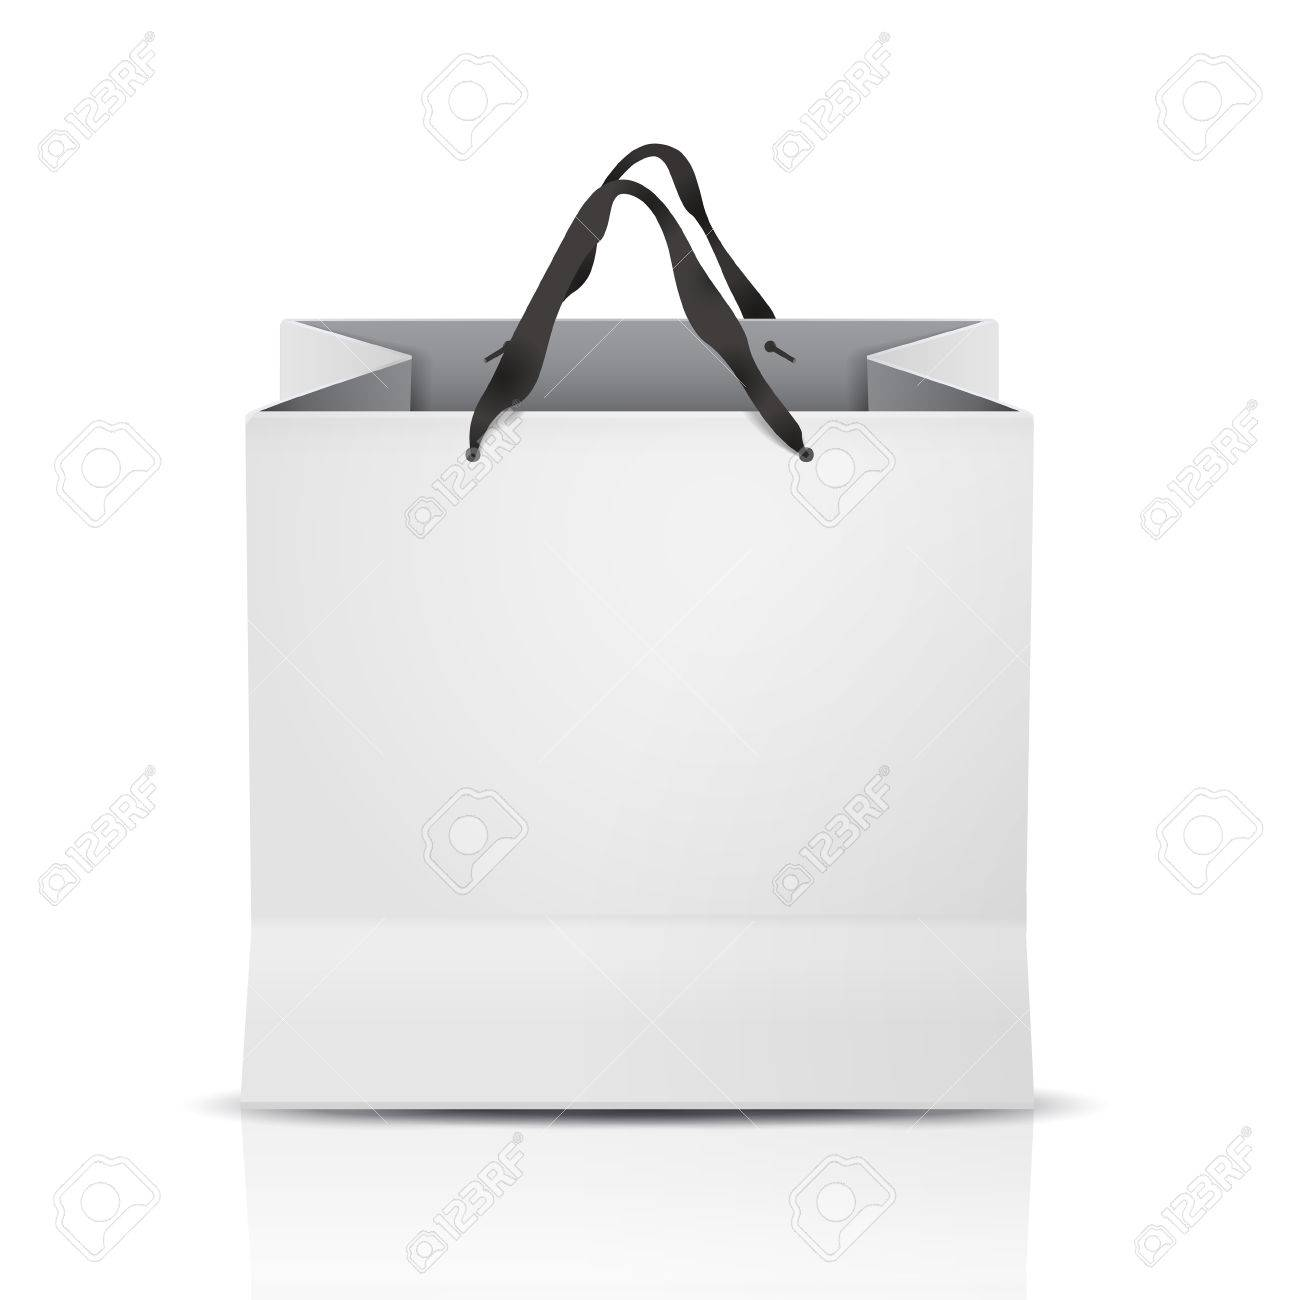 White Shopping Bag Template Isolated On White Royalty Free ...